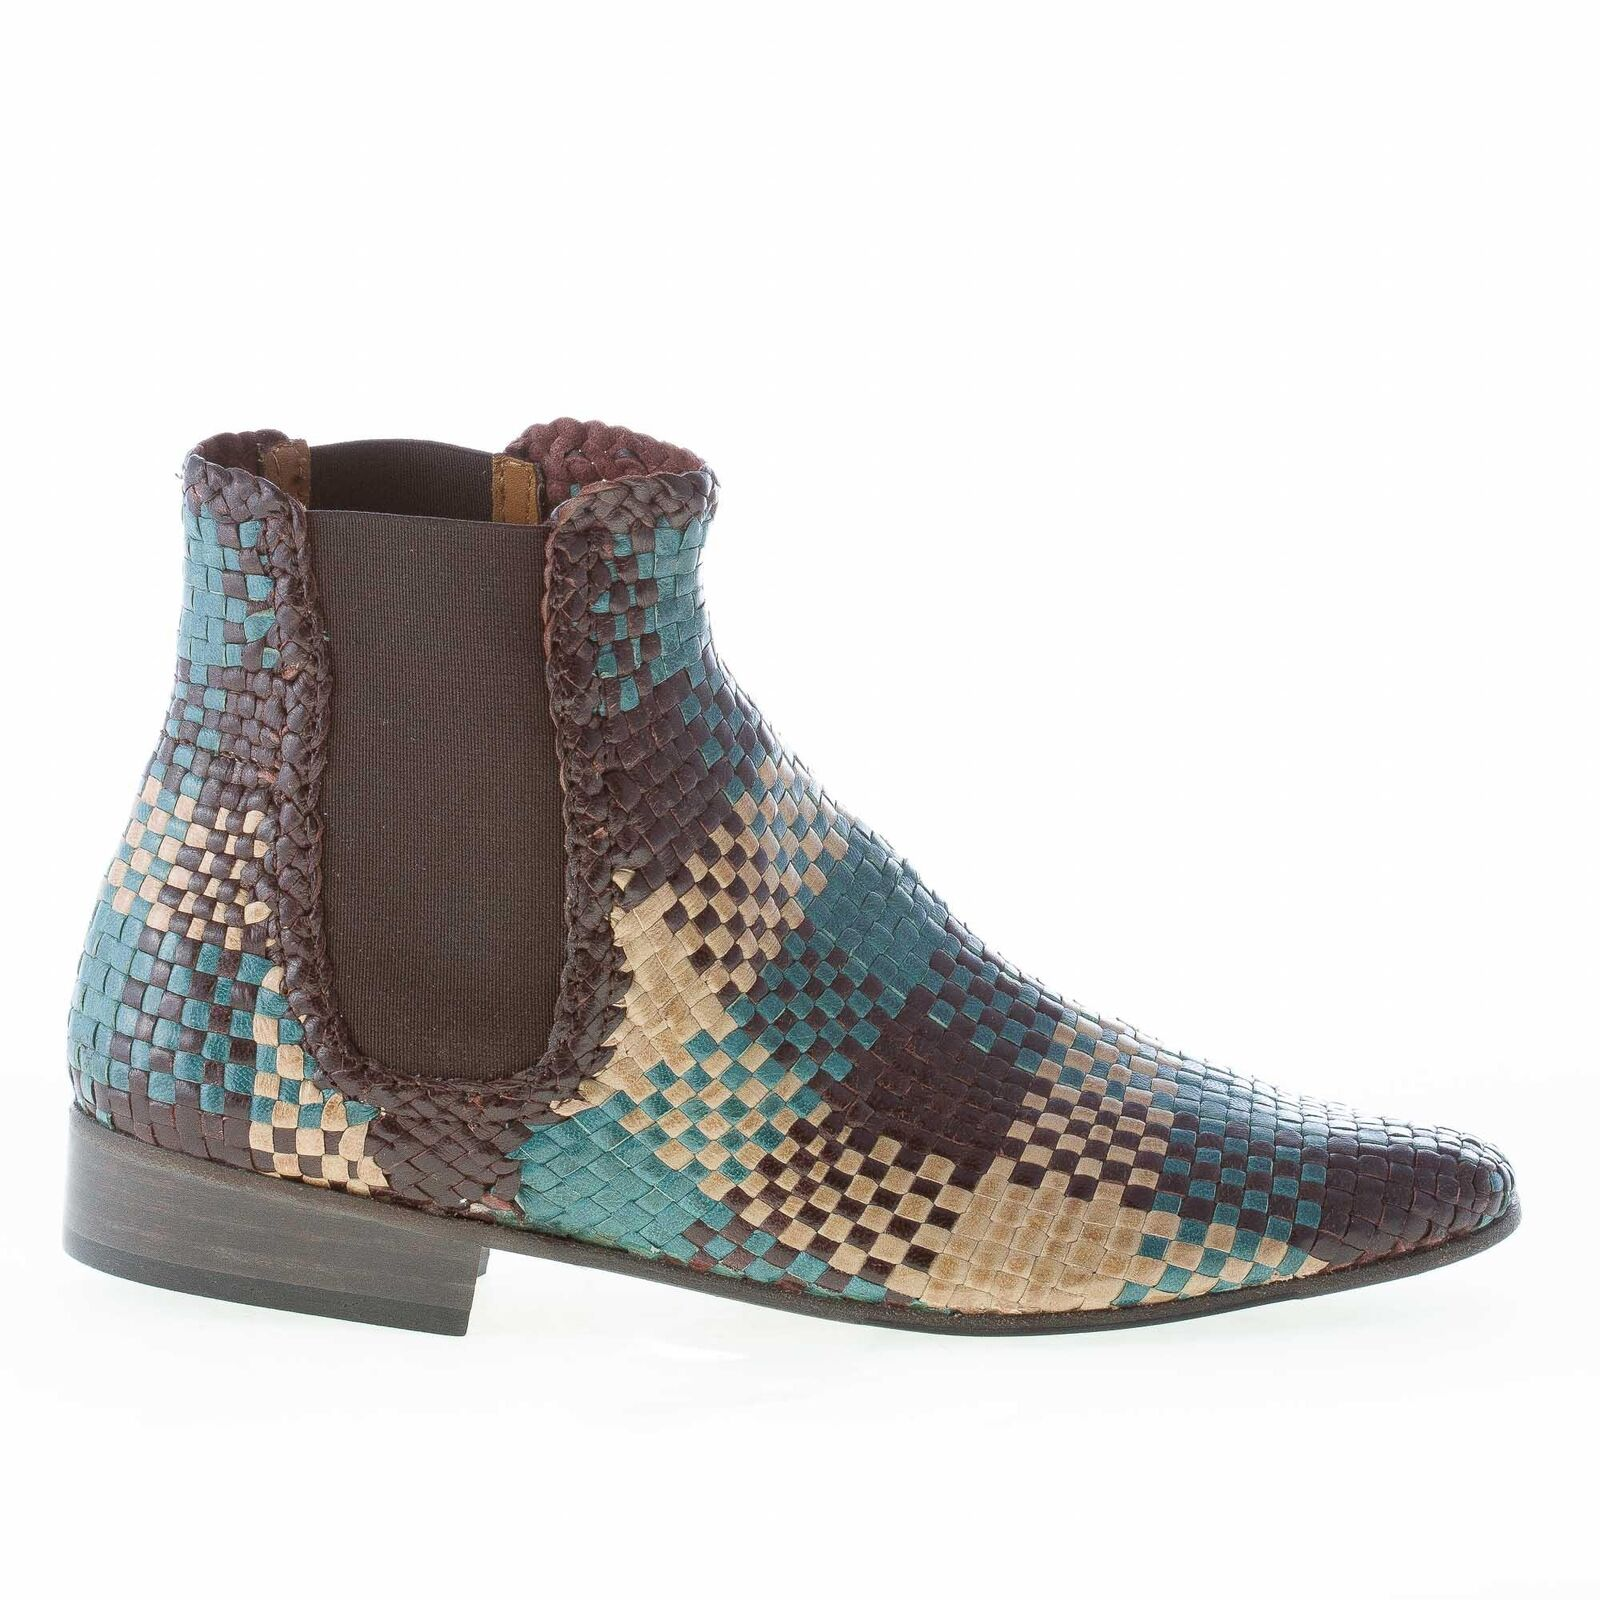 Mos womens multicolor knotted leather ankle boot brown beige green